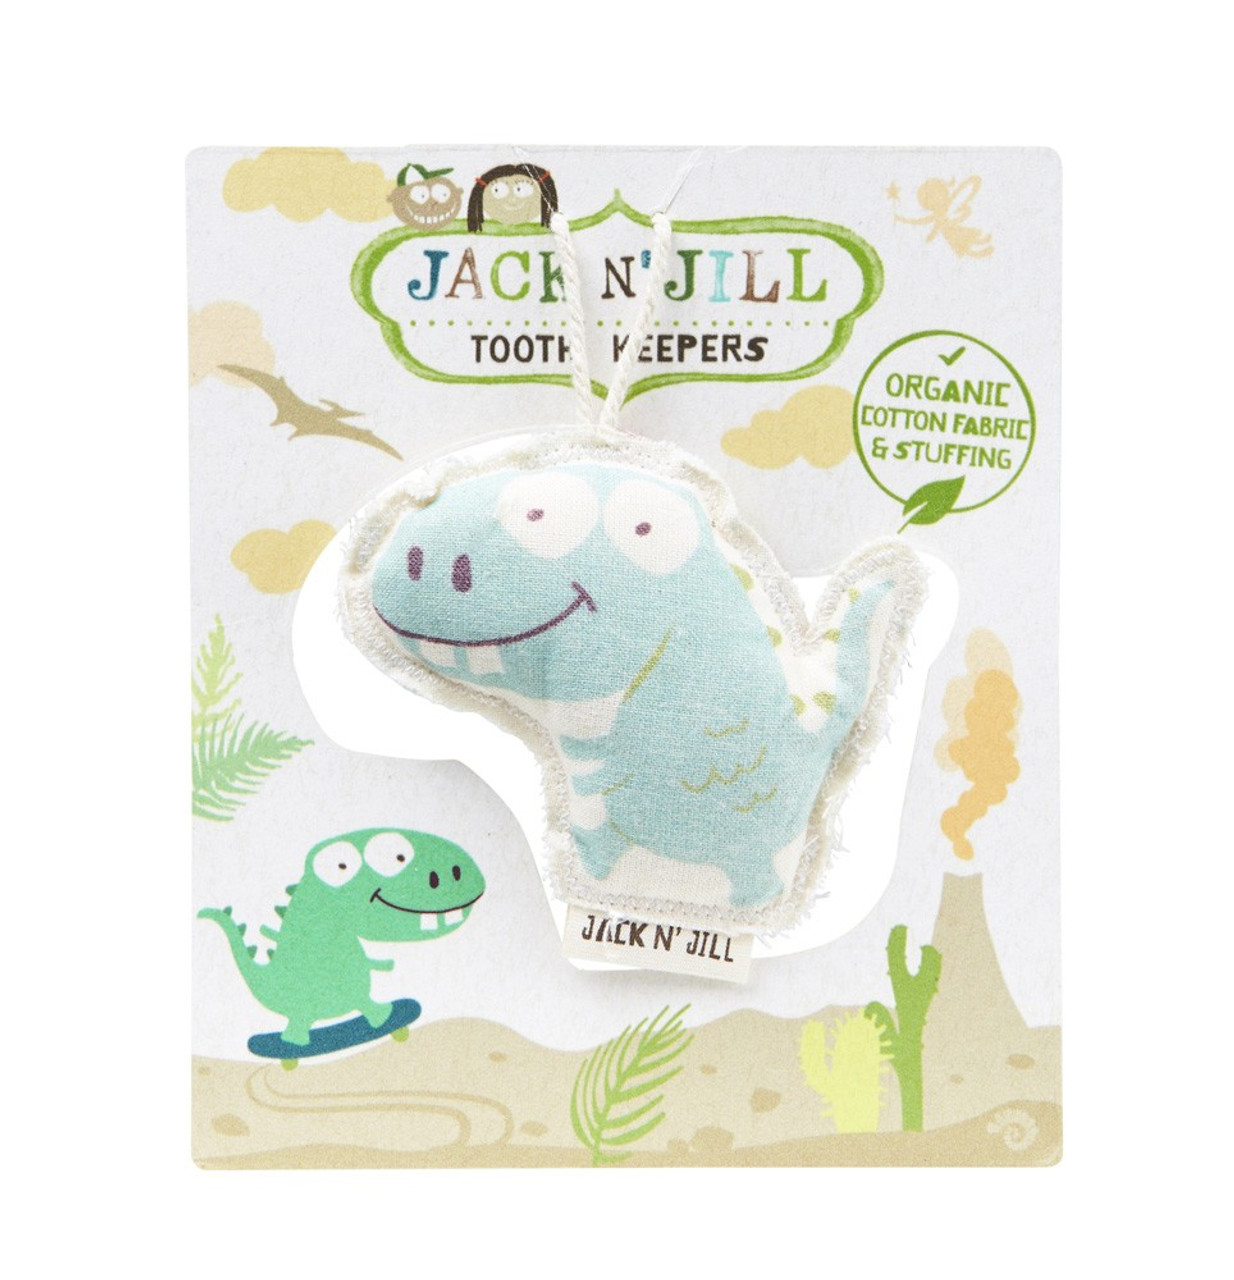 Jack & Jill Tooth Keeper DINO